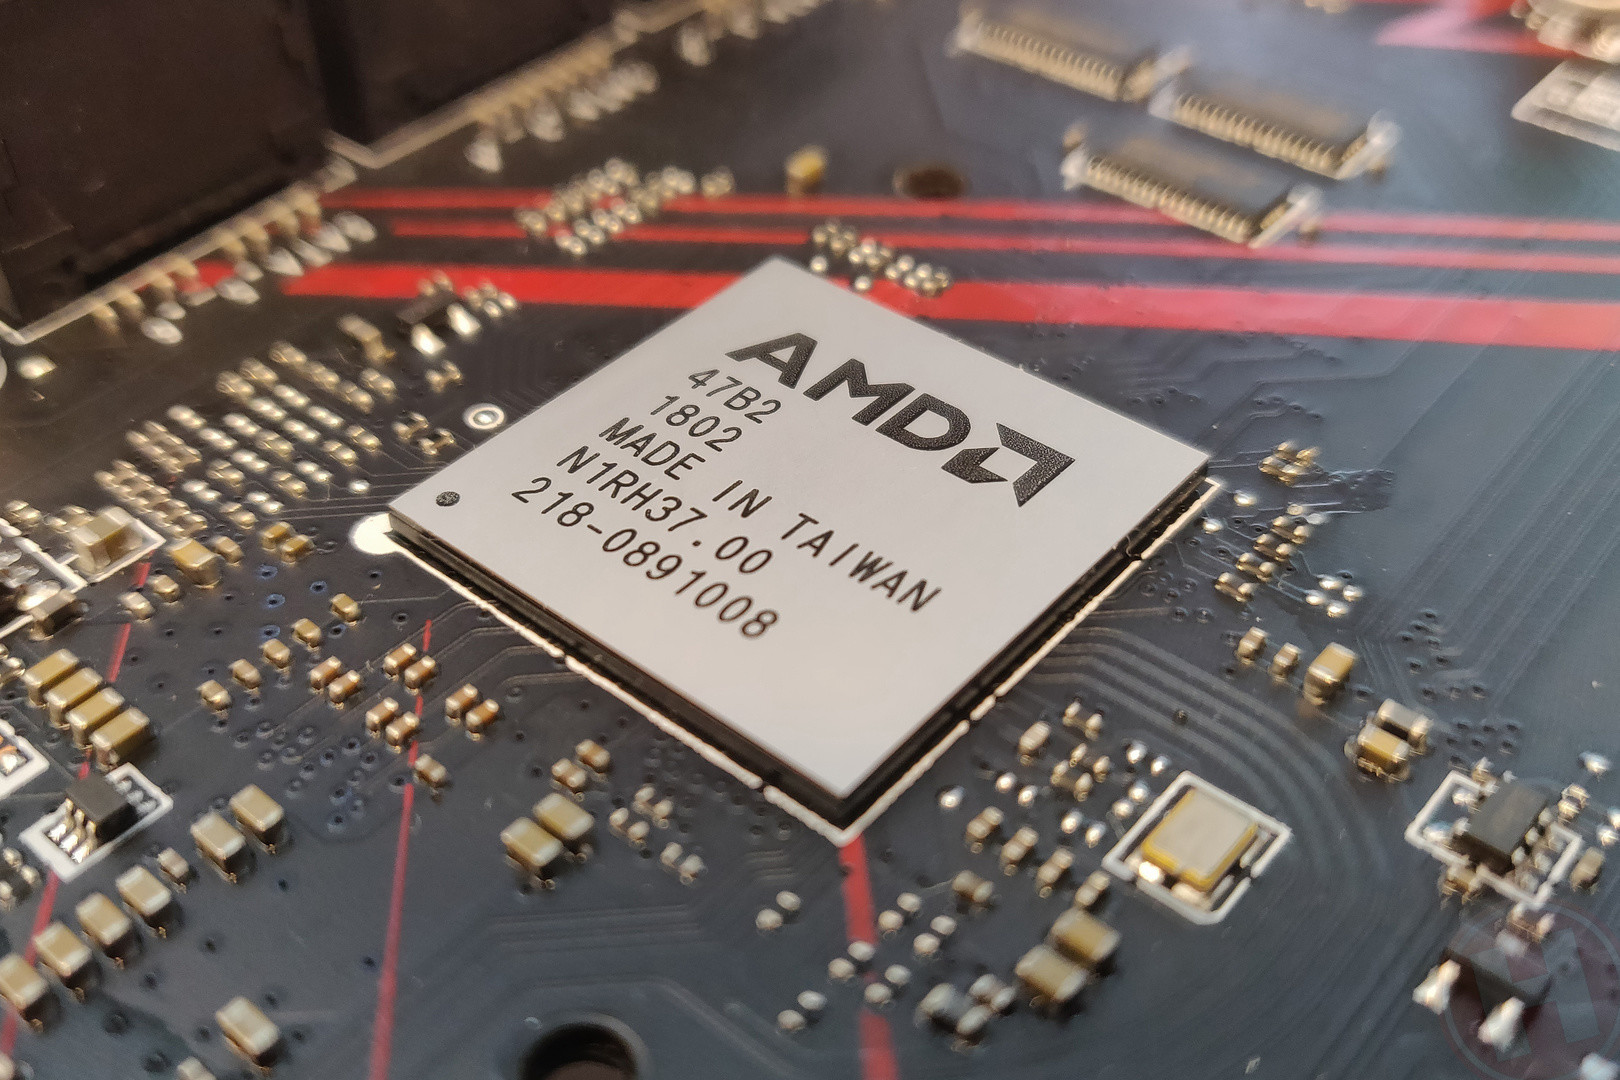 Best Amd Motherboard 2020 ASMedia sourced AMD B550, A520 Chipset Motherboards Arrive in 2020